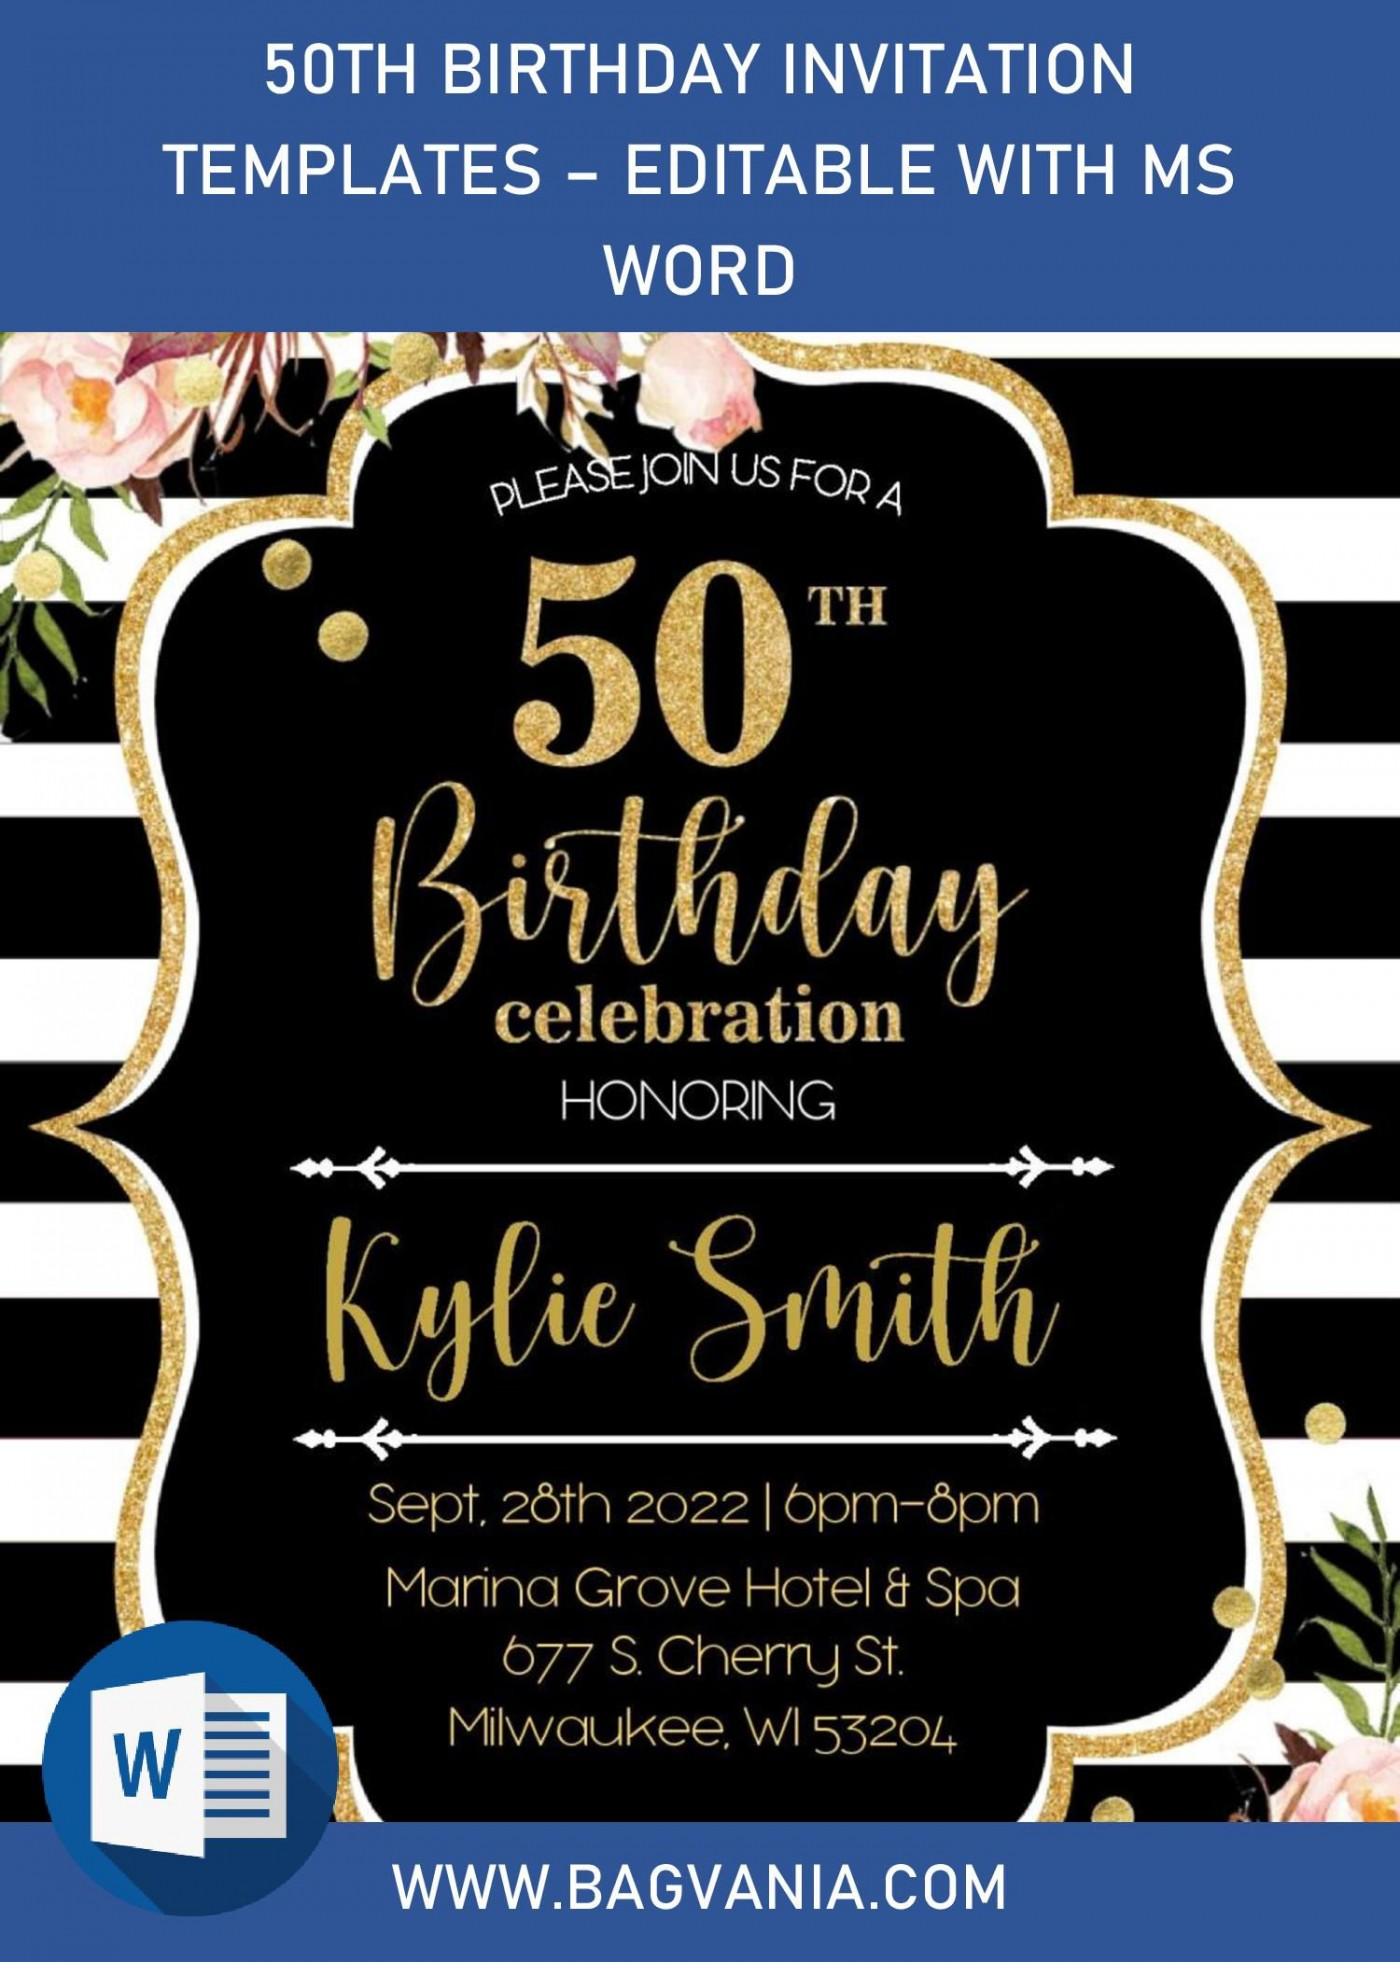 003 Phenomenal Microsoft Word 50th Birthday Invitation Template Highest Quality  Editable Wedding Anniversary1400